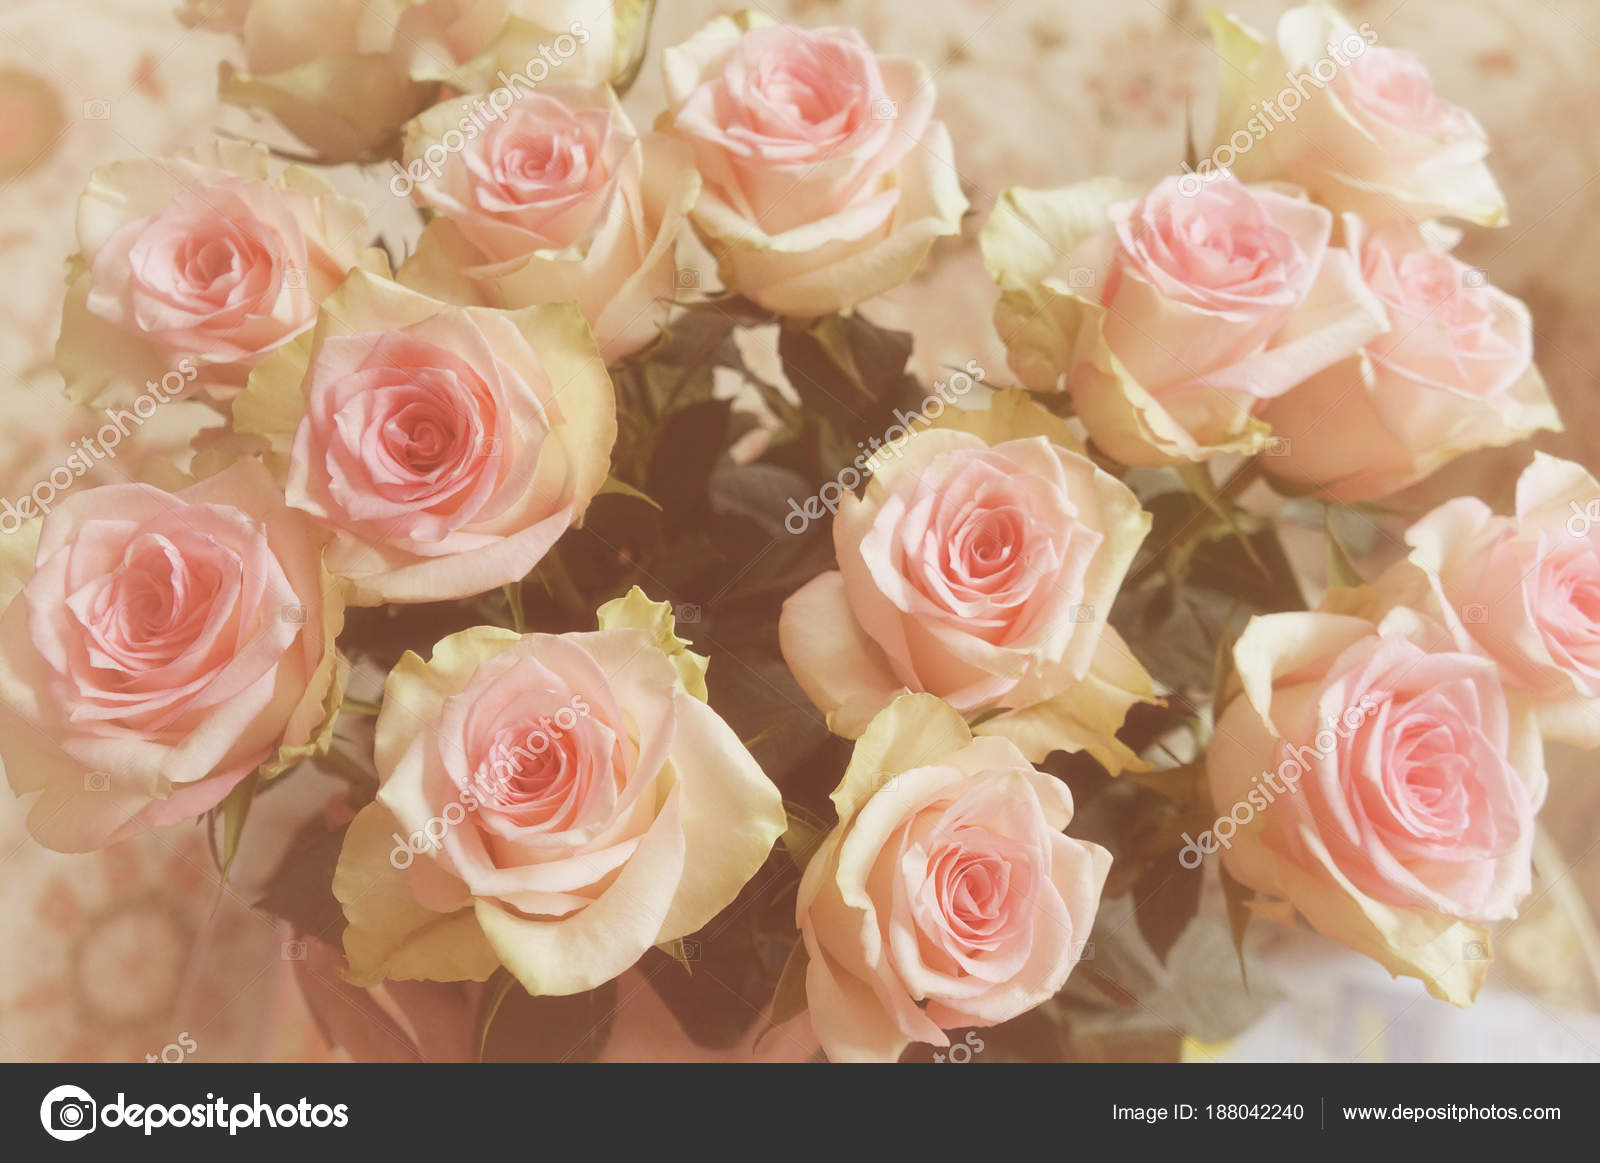 Natural Beautiful Rose Bouquet Flowers Background Stock Photo